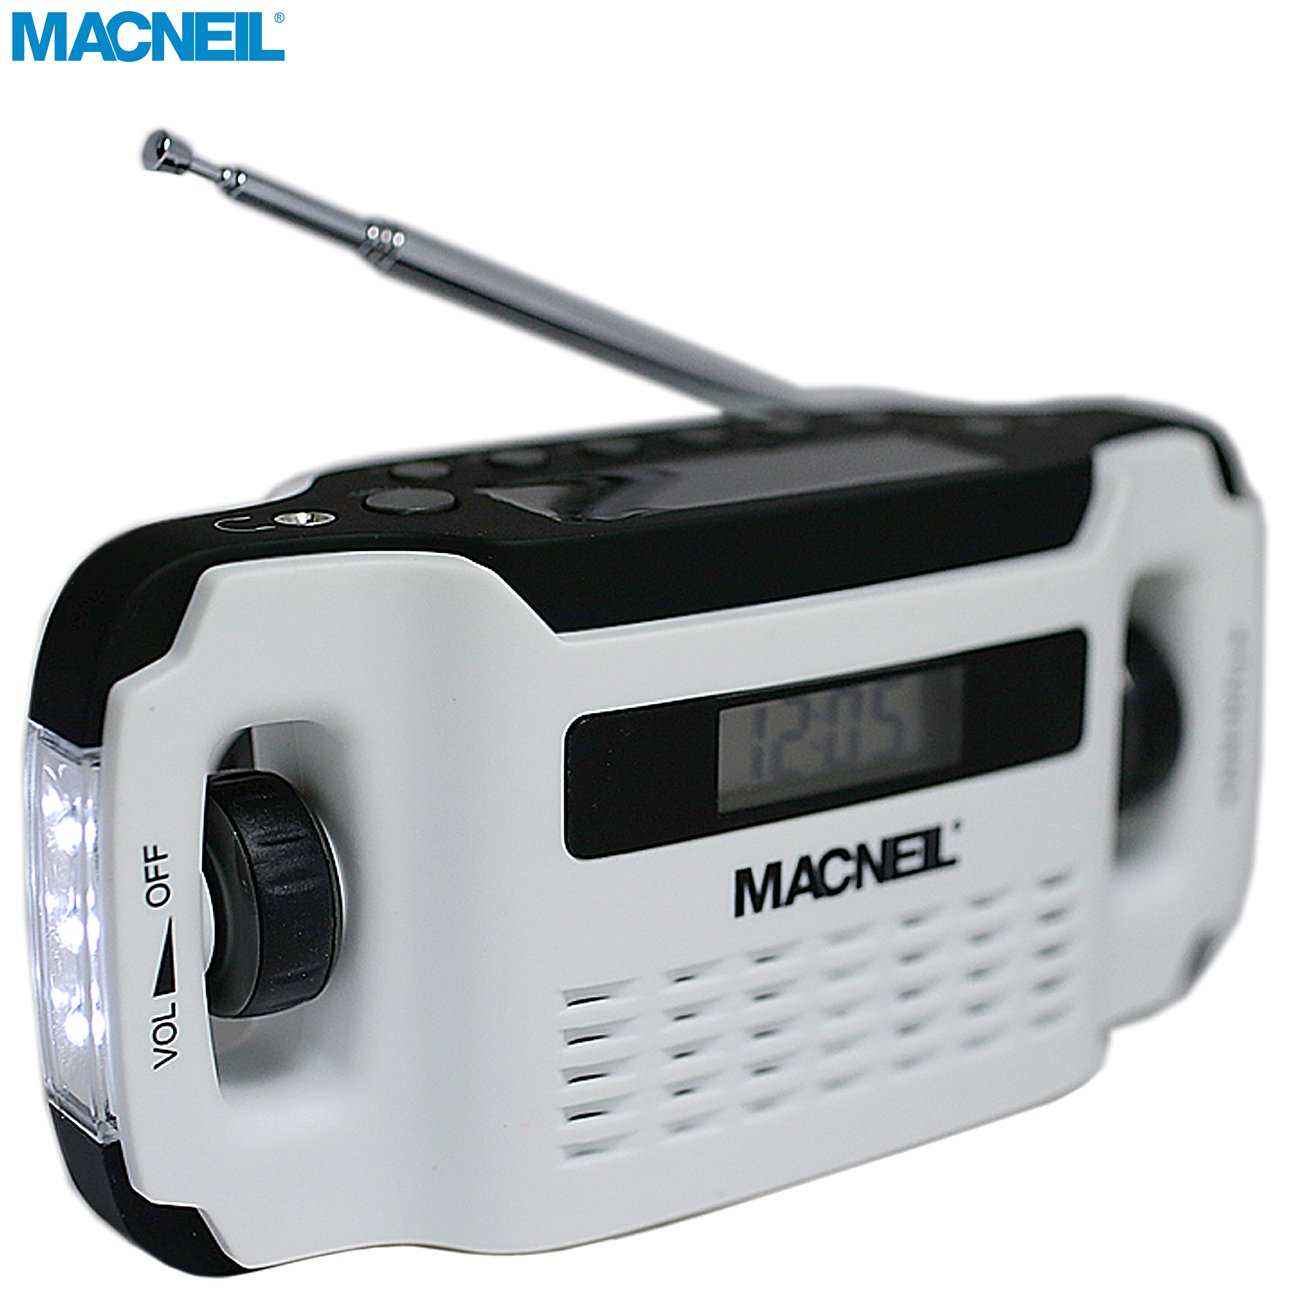 Macneil Windup and Solar Powered Portable AM/FM Radio with Built-in LED Torch and USB Charging Cable - Ideal for Walking, Hiking Camping and Home Office/Kitchen use - in Alpine White MCN5020